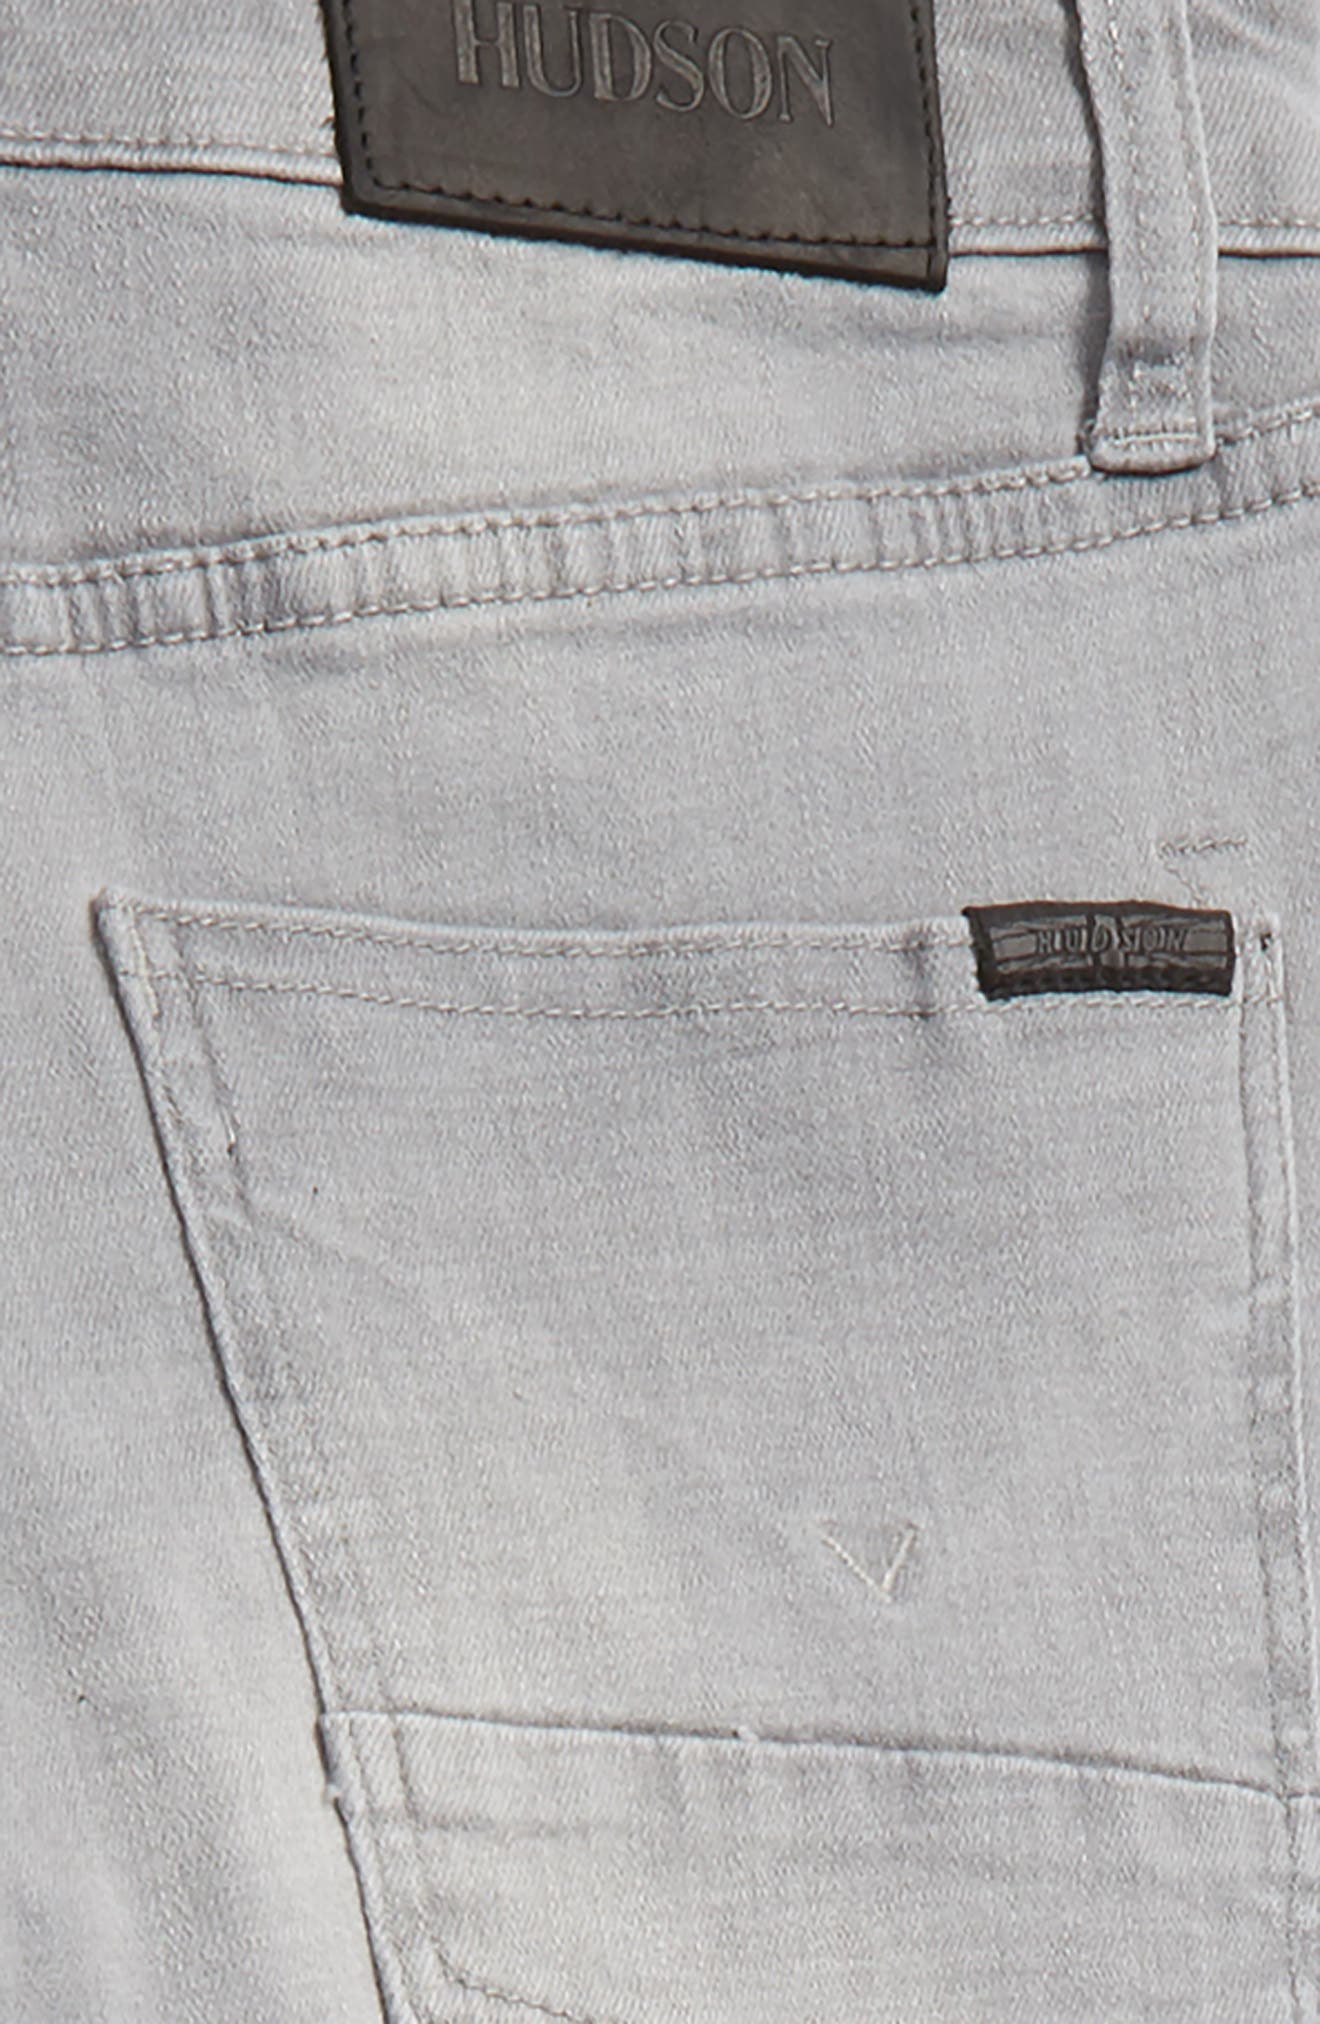 Jude Slim Fit Skinny Jeans,                             Alternate thumbnail 3, color,                             Ice Gray